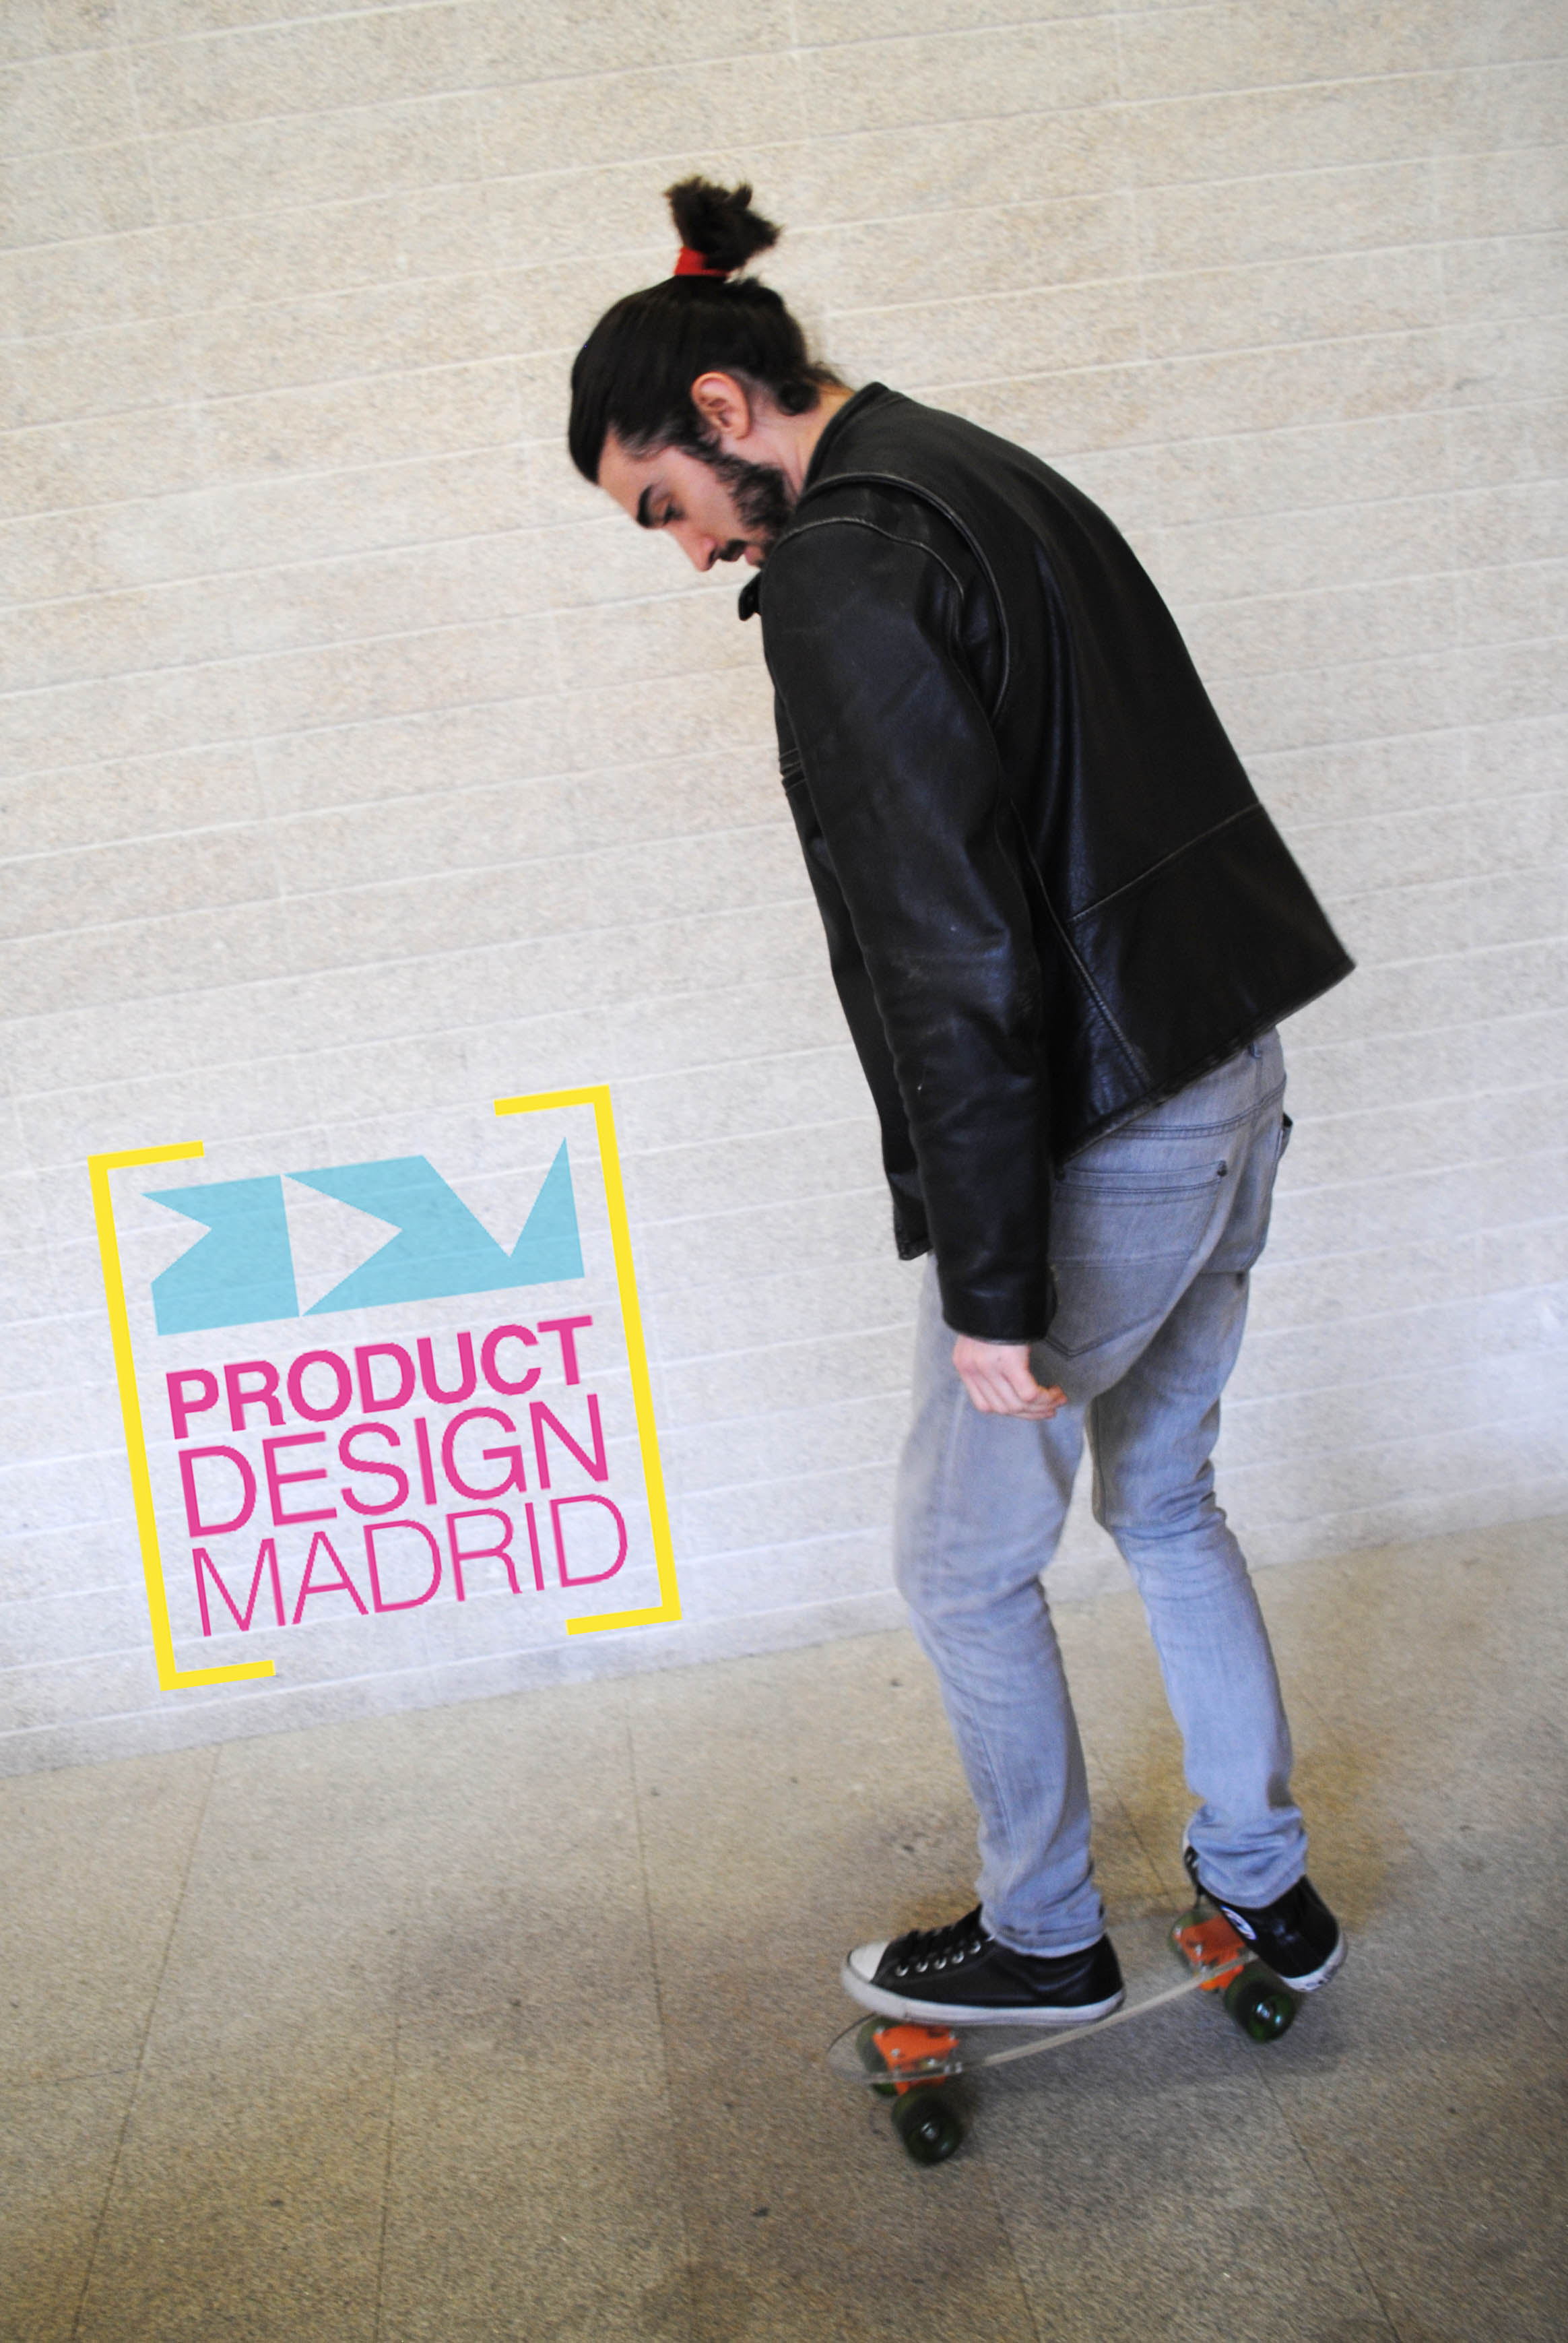 Product Design Madrid Skateair